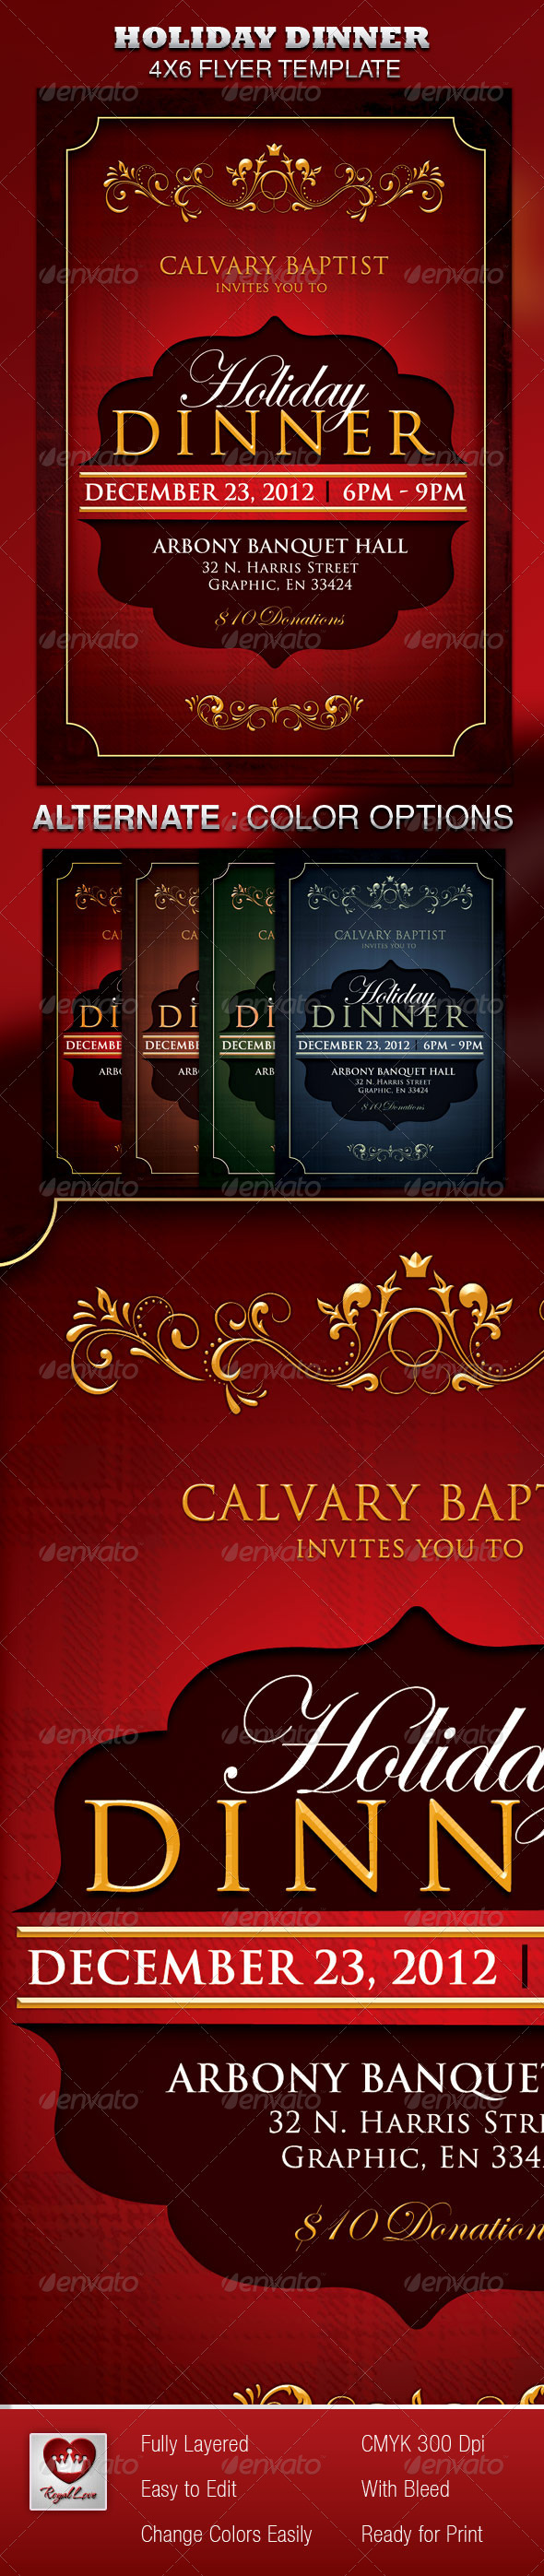 GraphicRiver Holiday Dinner Church Flyer 3532482